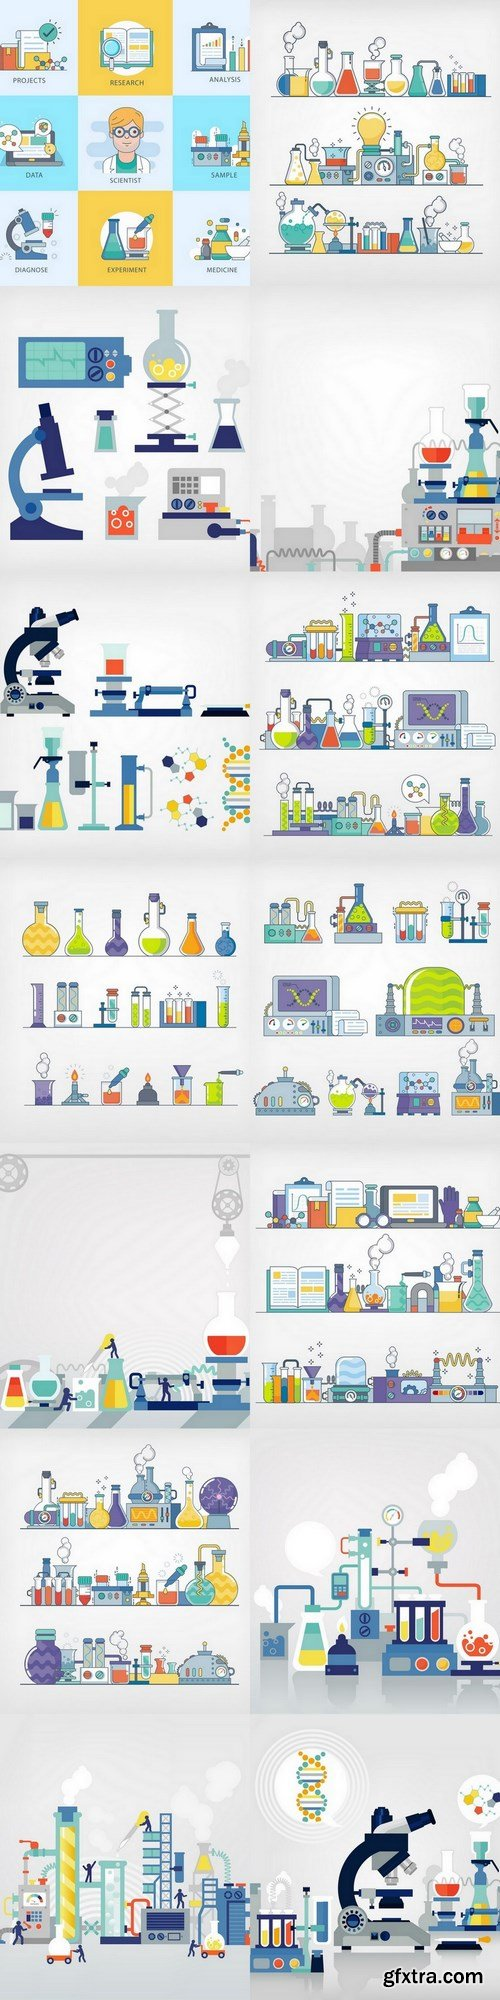 Scientisticons - 14 EPS Vector Stock